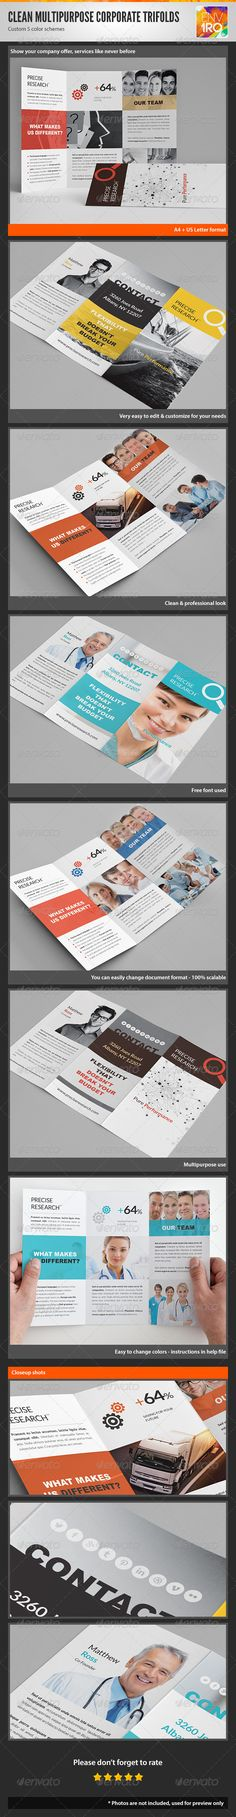 Clean Multipurpose Corporate Trifold Templates II GraphicRiver Minimal Trifolds Pack Contains 20 Files